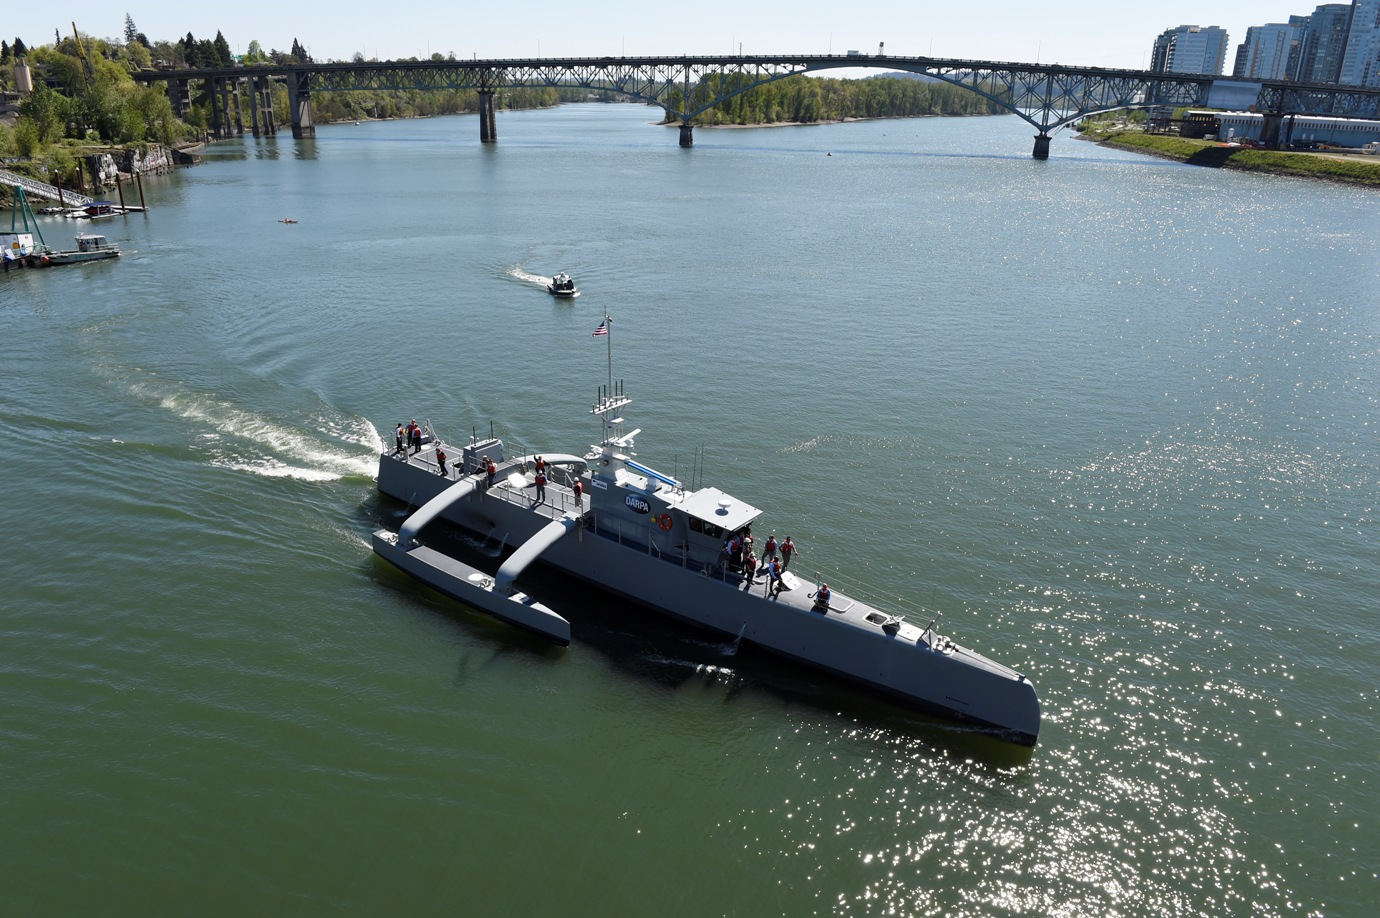 Sea Hunter underway on the Williammette River in Portland, on April 7, 2016. U.S. Navy photo by John F. Williams